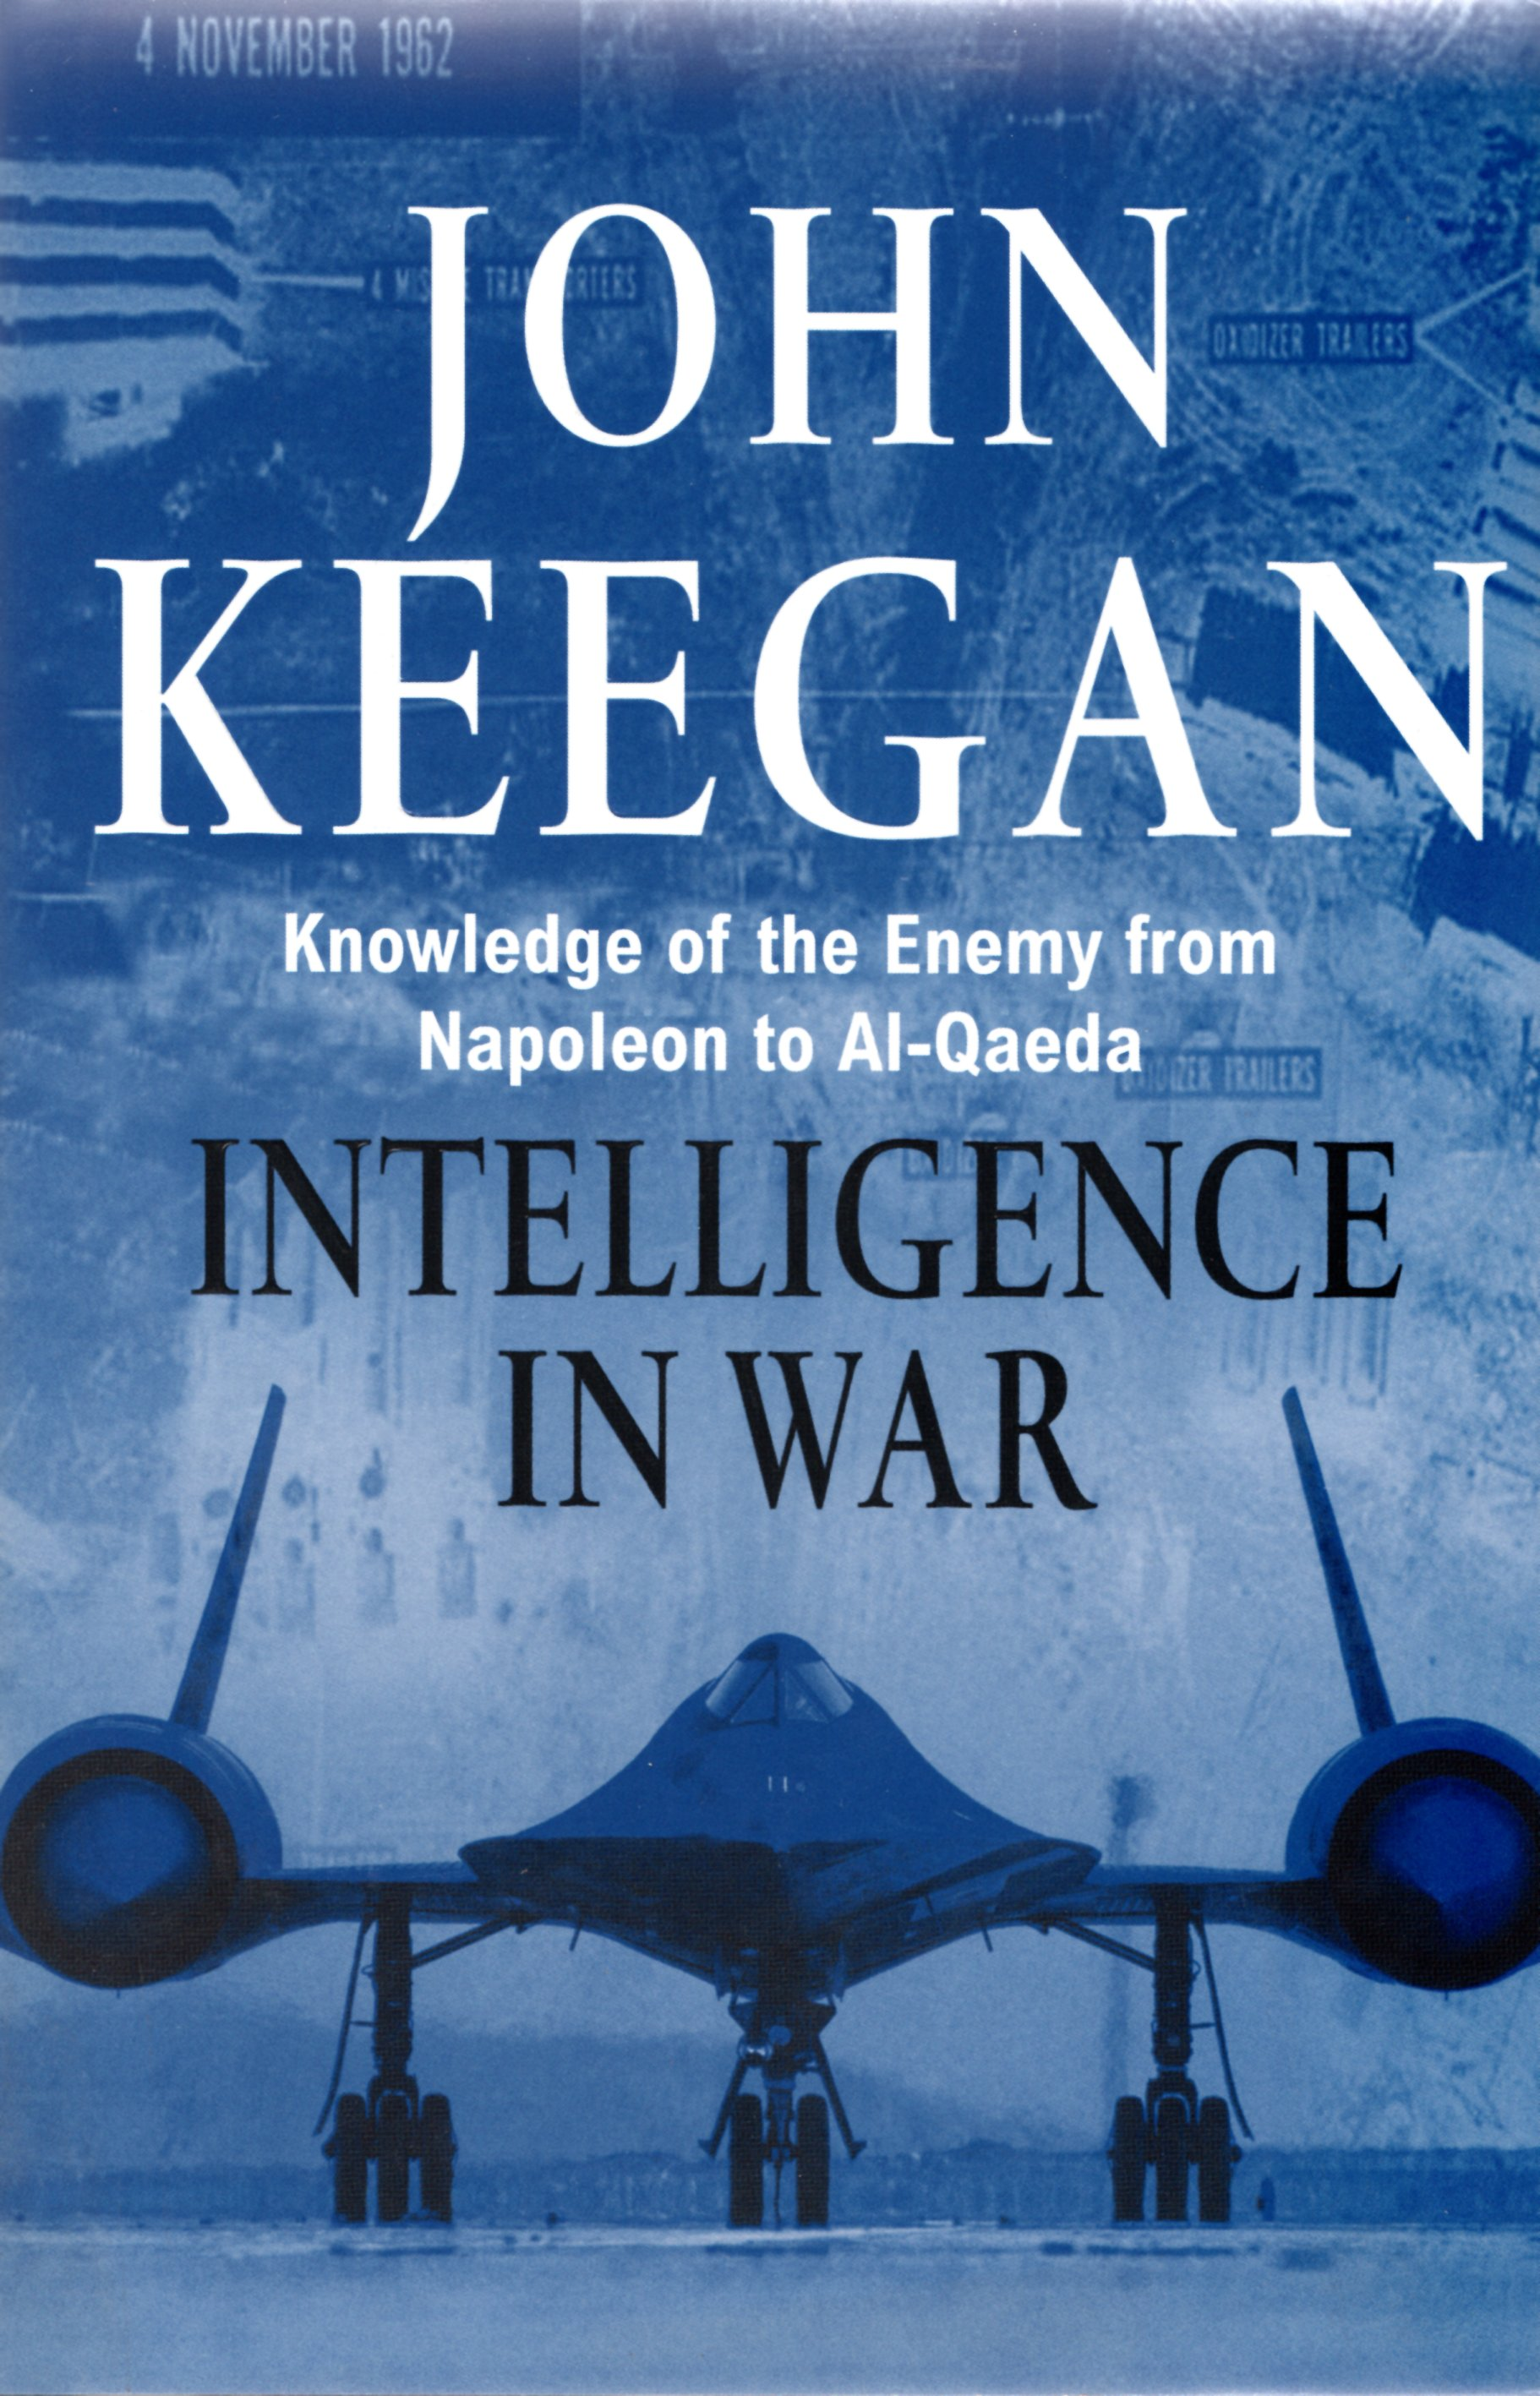 Image for Intelligence in War. Knowledge of the Enemy from Napoleon to Al-Qaeda